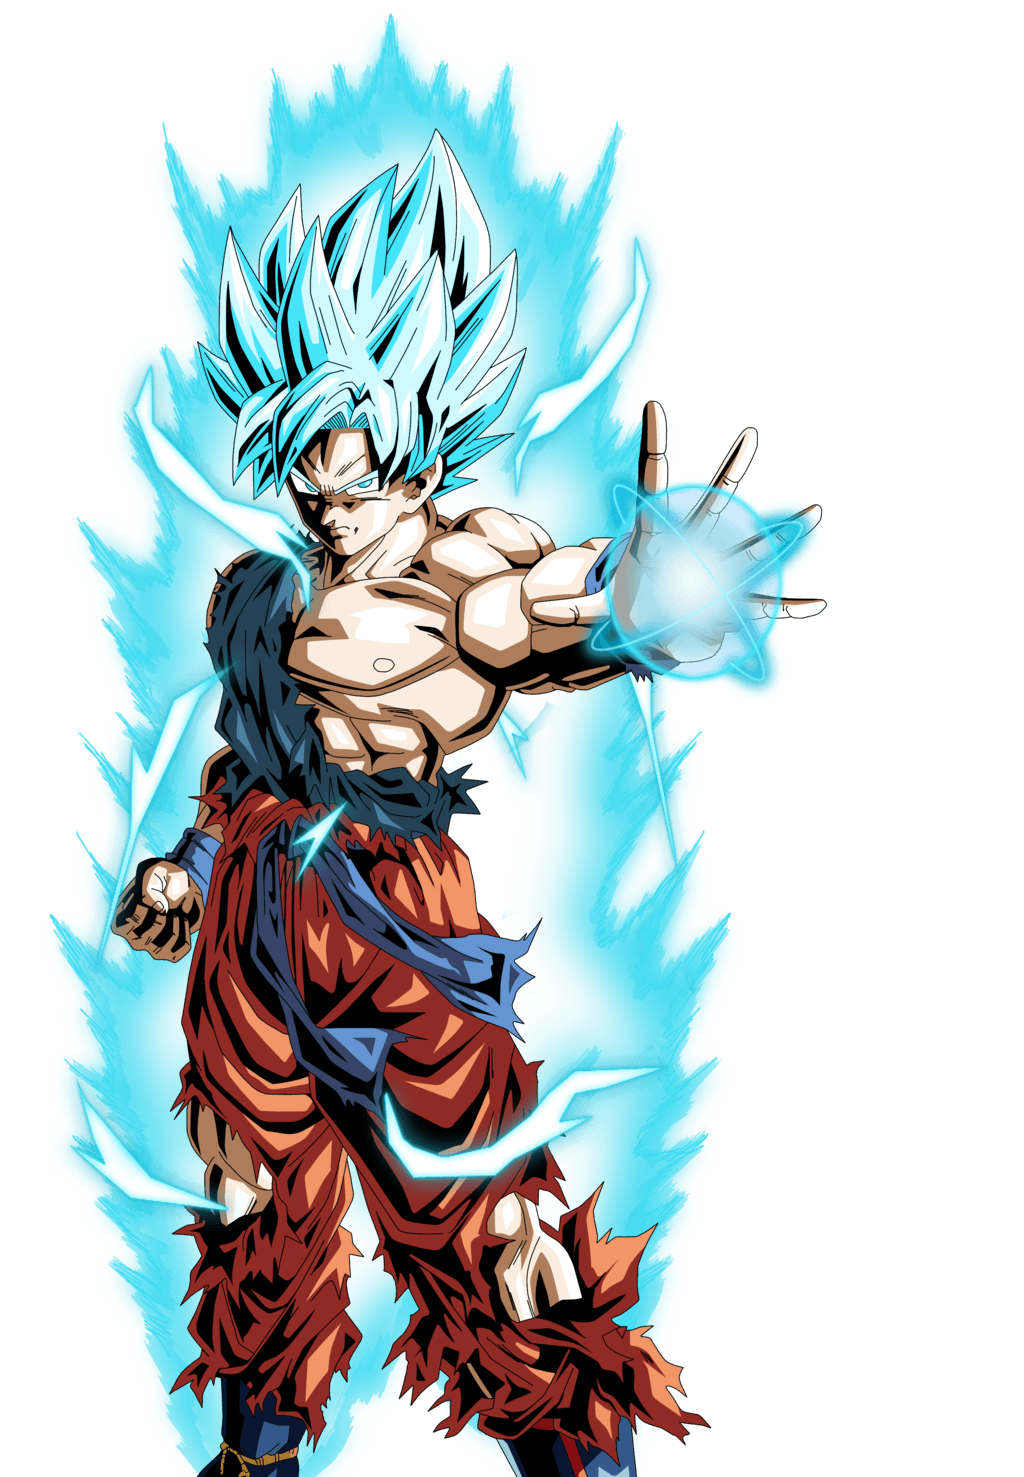 Super saiyan god super saiyan goku wallpapers wallpaper cave - Super sayen 10 ...